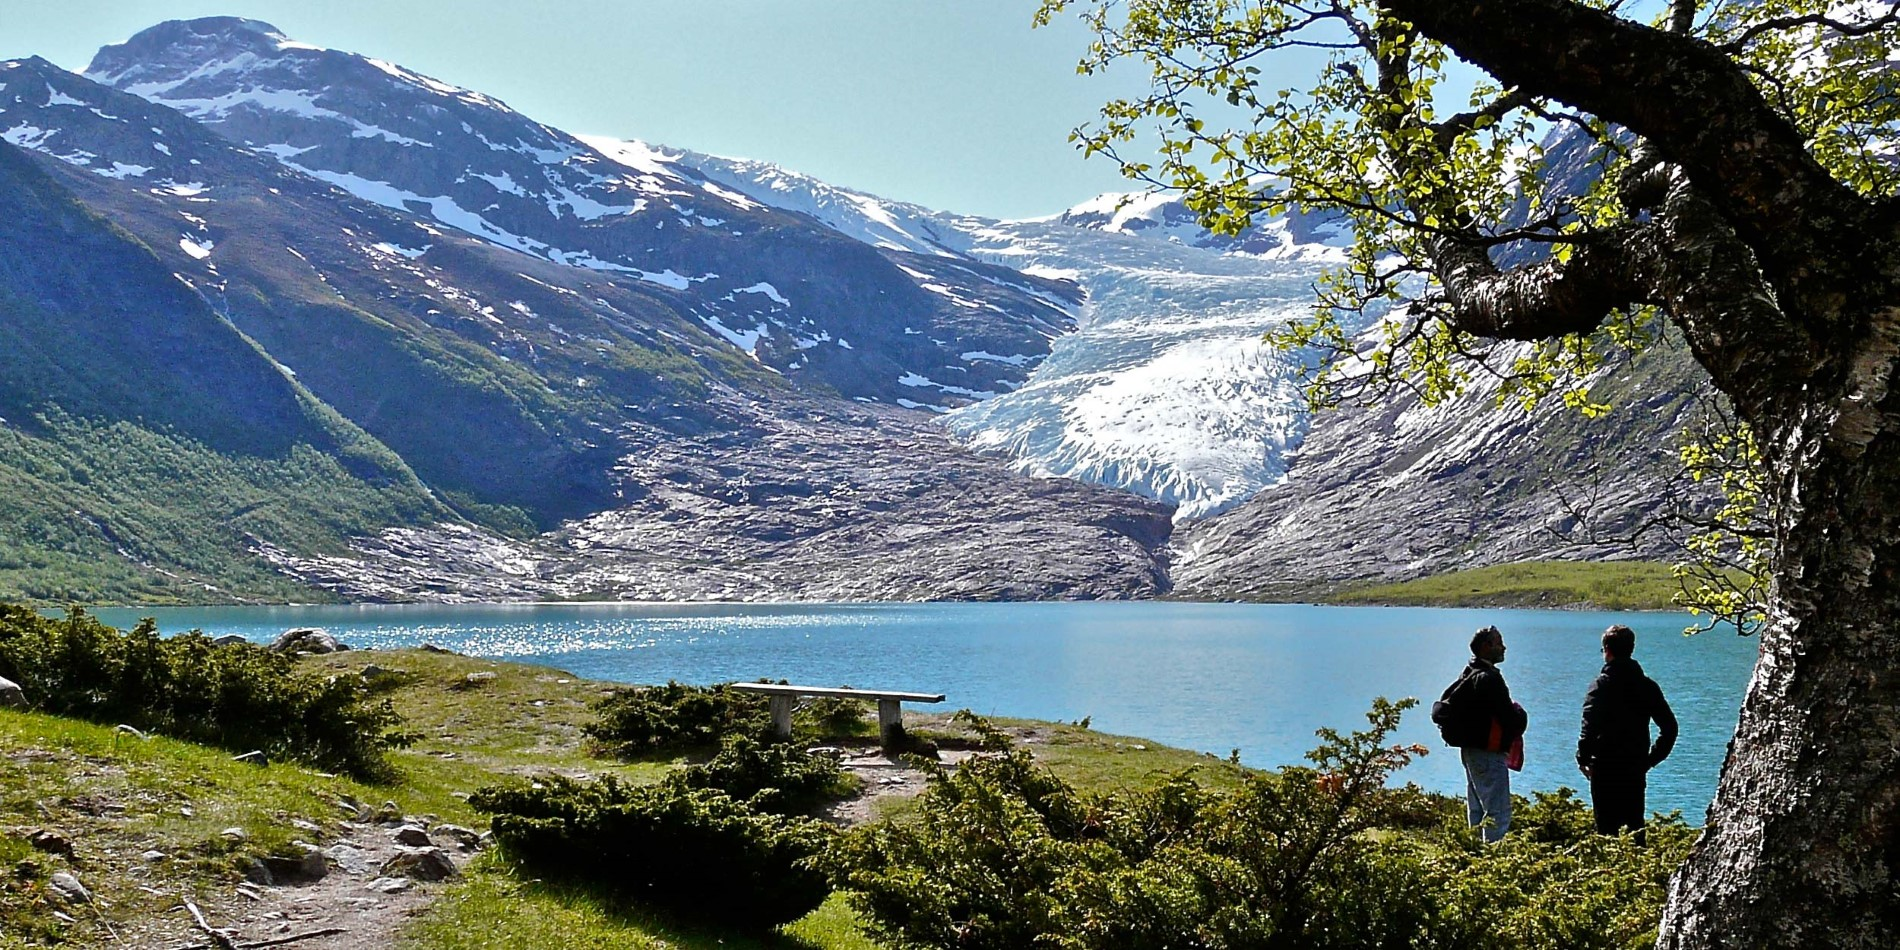 Svartisen Glacier across the lake